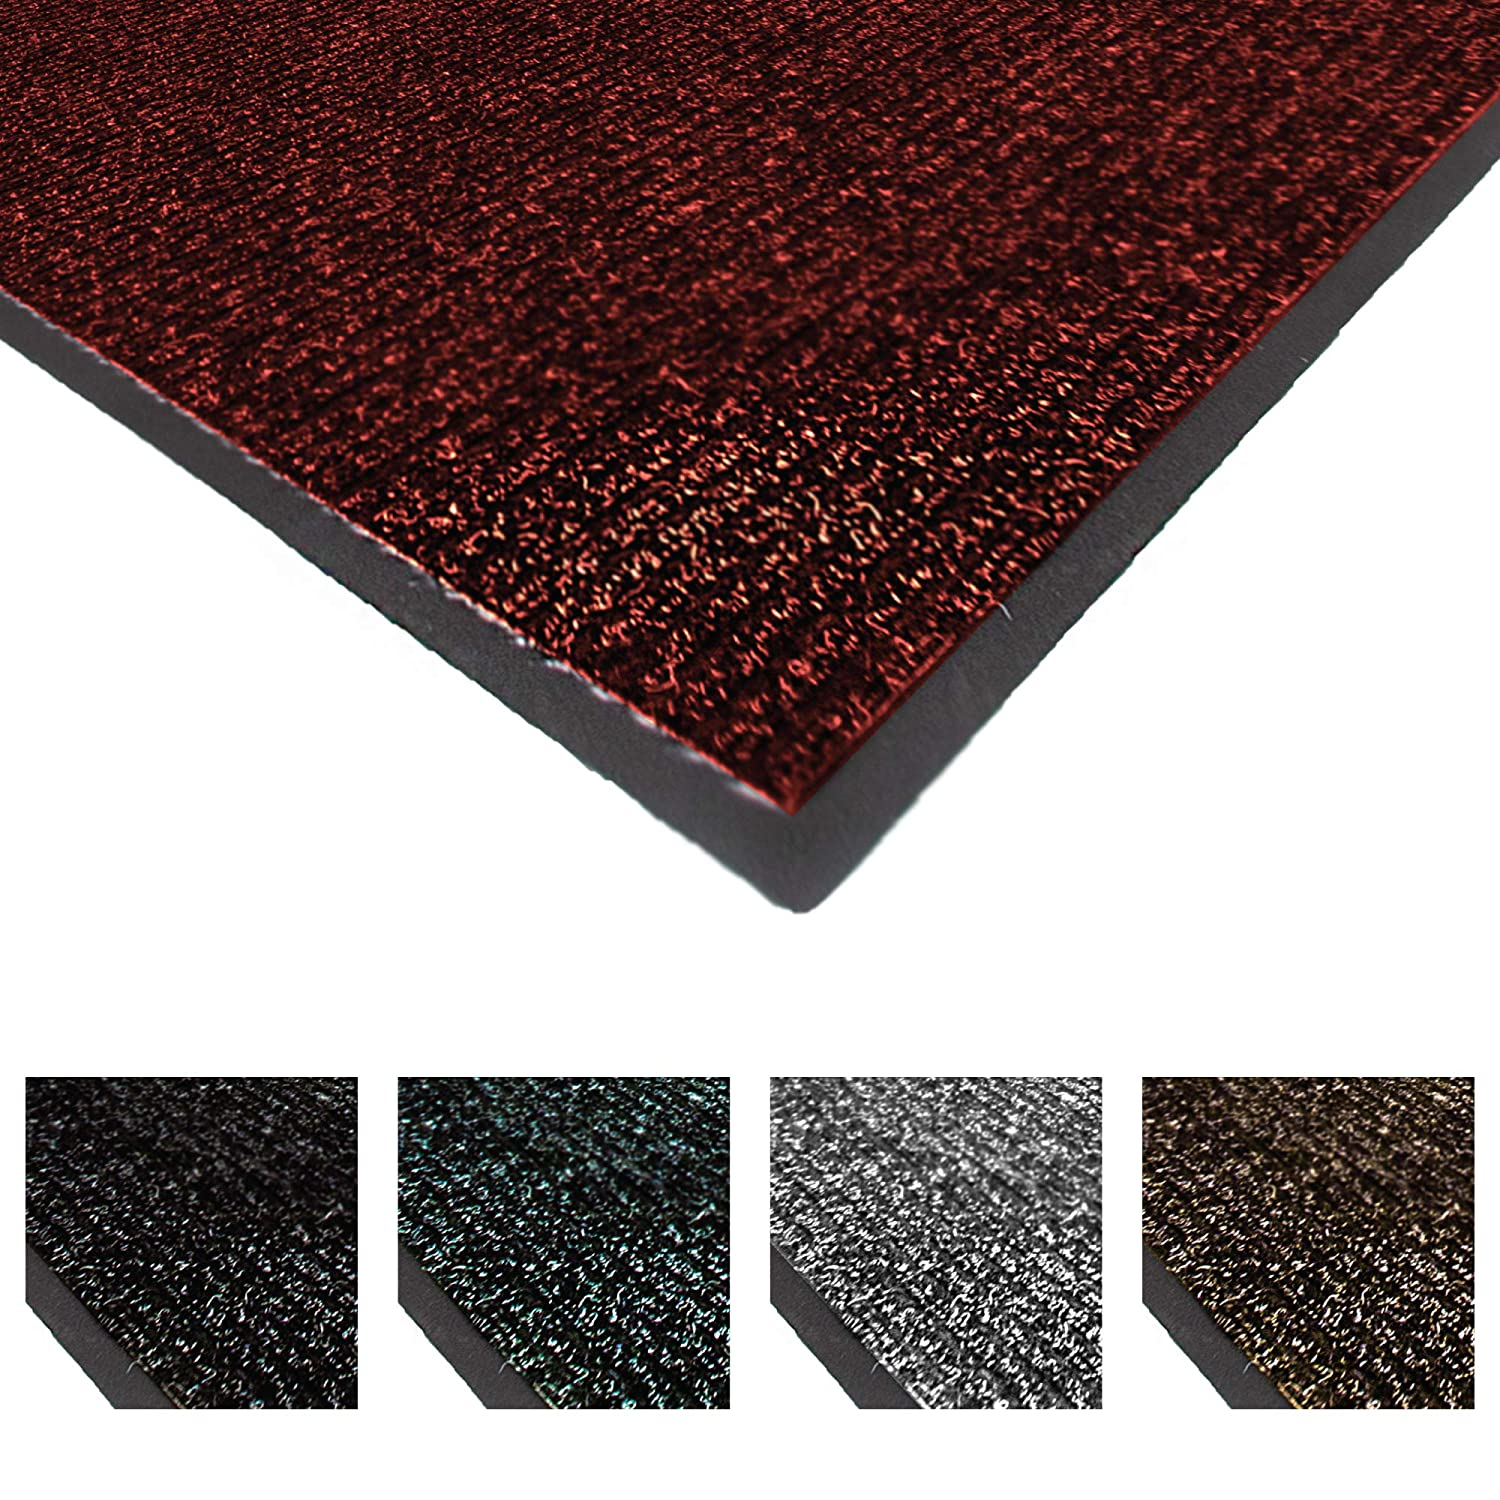 Notrax 117 Heritage Rib Entrance Mat, for Home or Office, 4' X 6' Red/Black